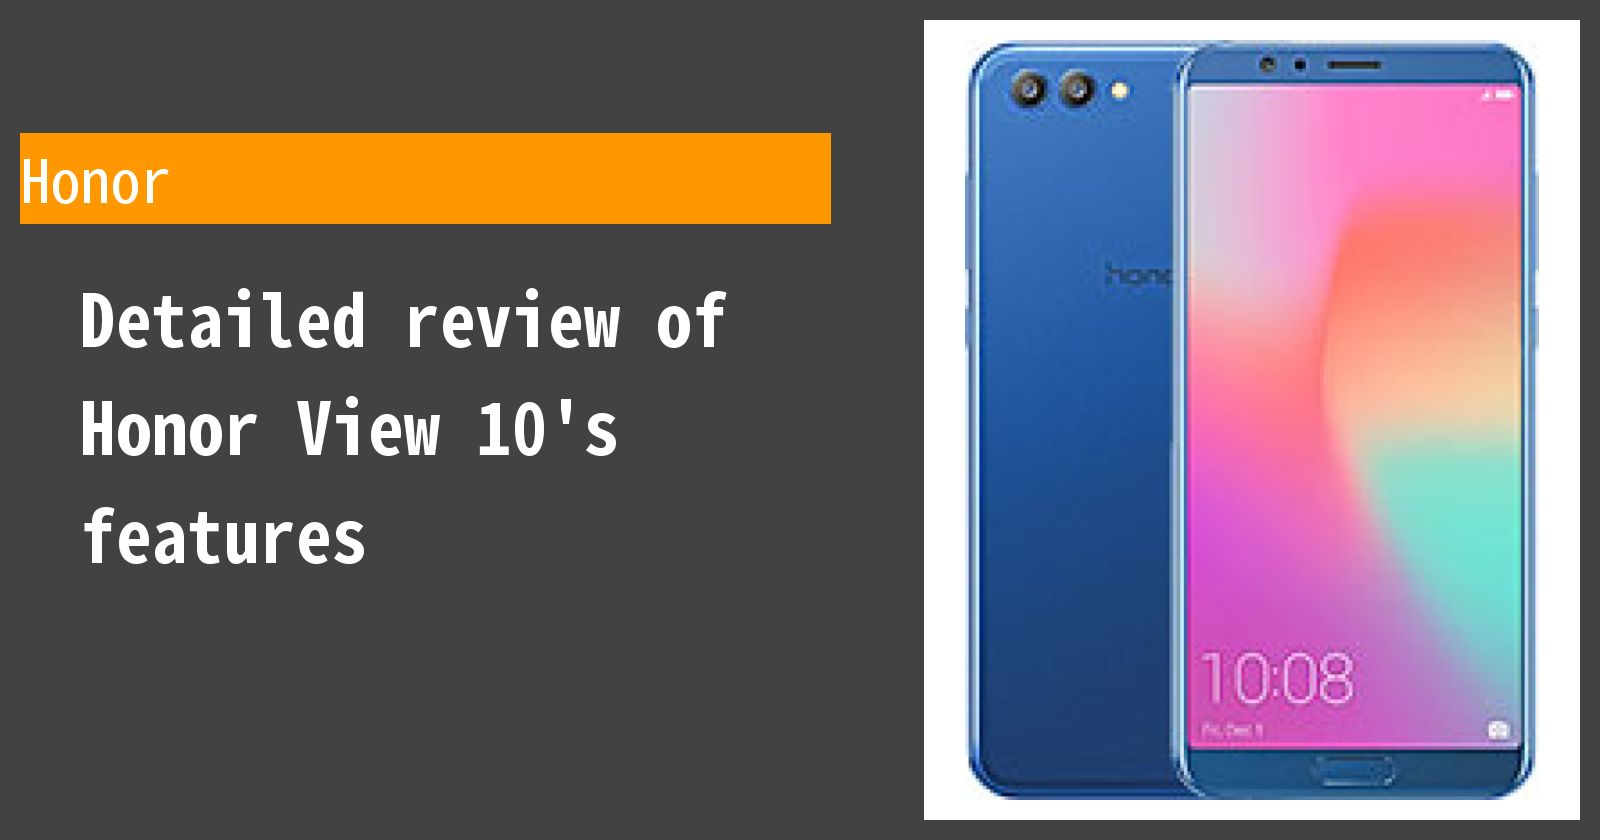 Detailed review of Honor View 10's features